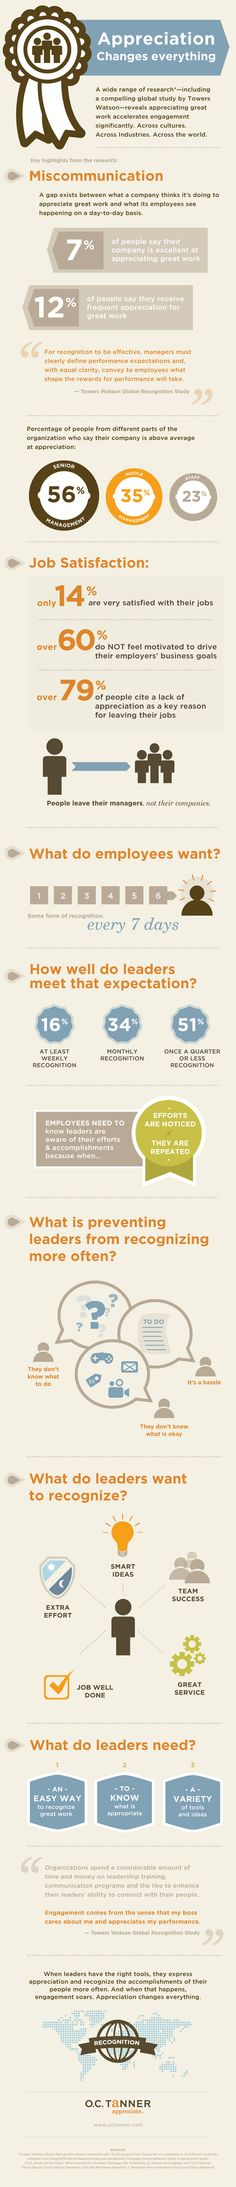 Major Gap Exists Between Management's and Employees' Views on Recognition #Infographic